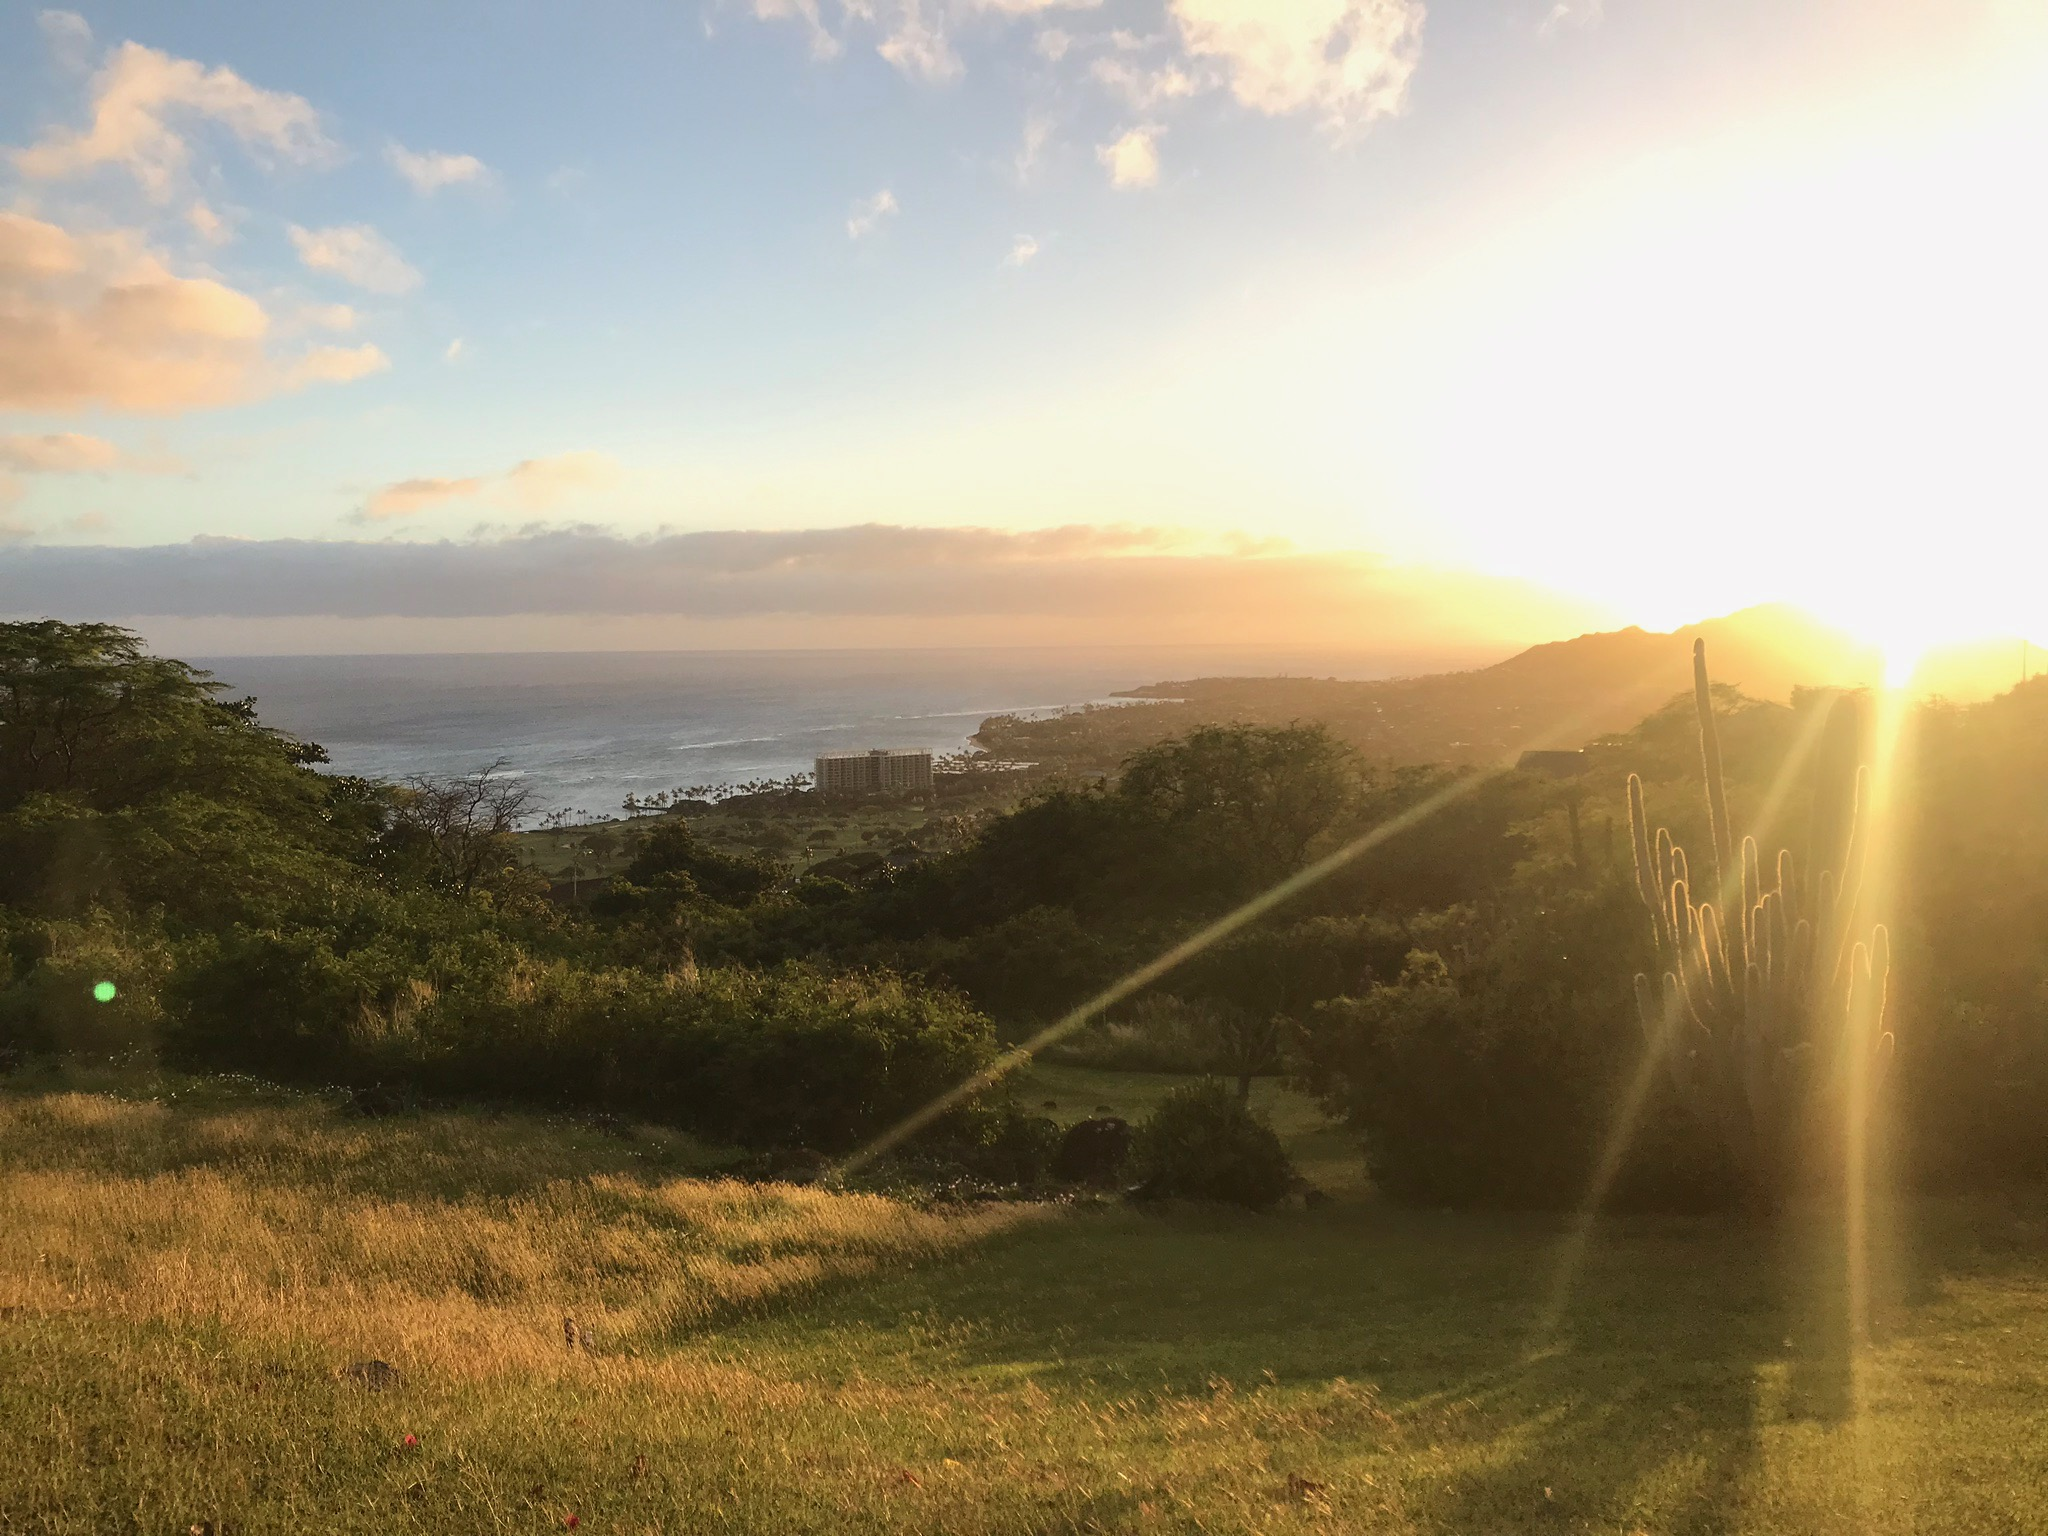 Carbon Offsets - We left our beautiful 'aina for a week … how to offset our carbon footprint?!